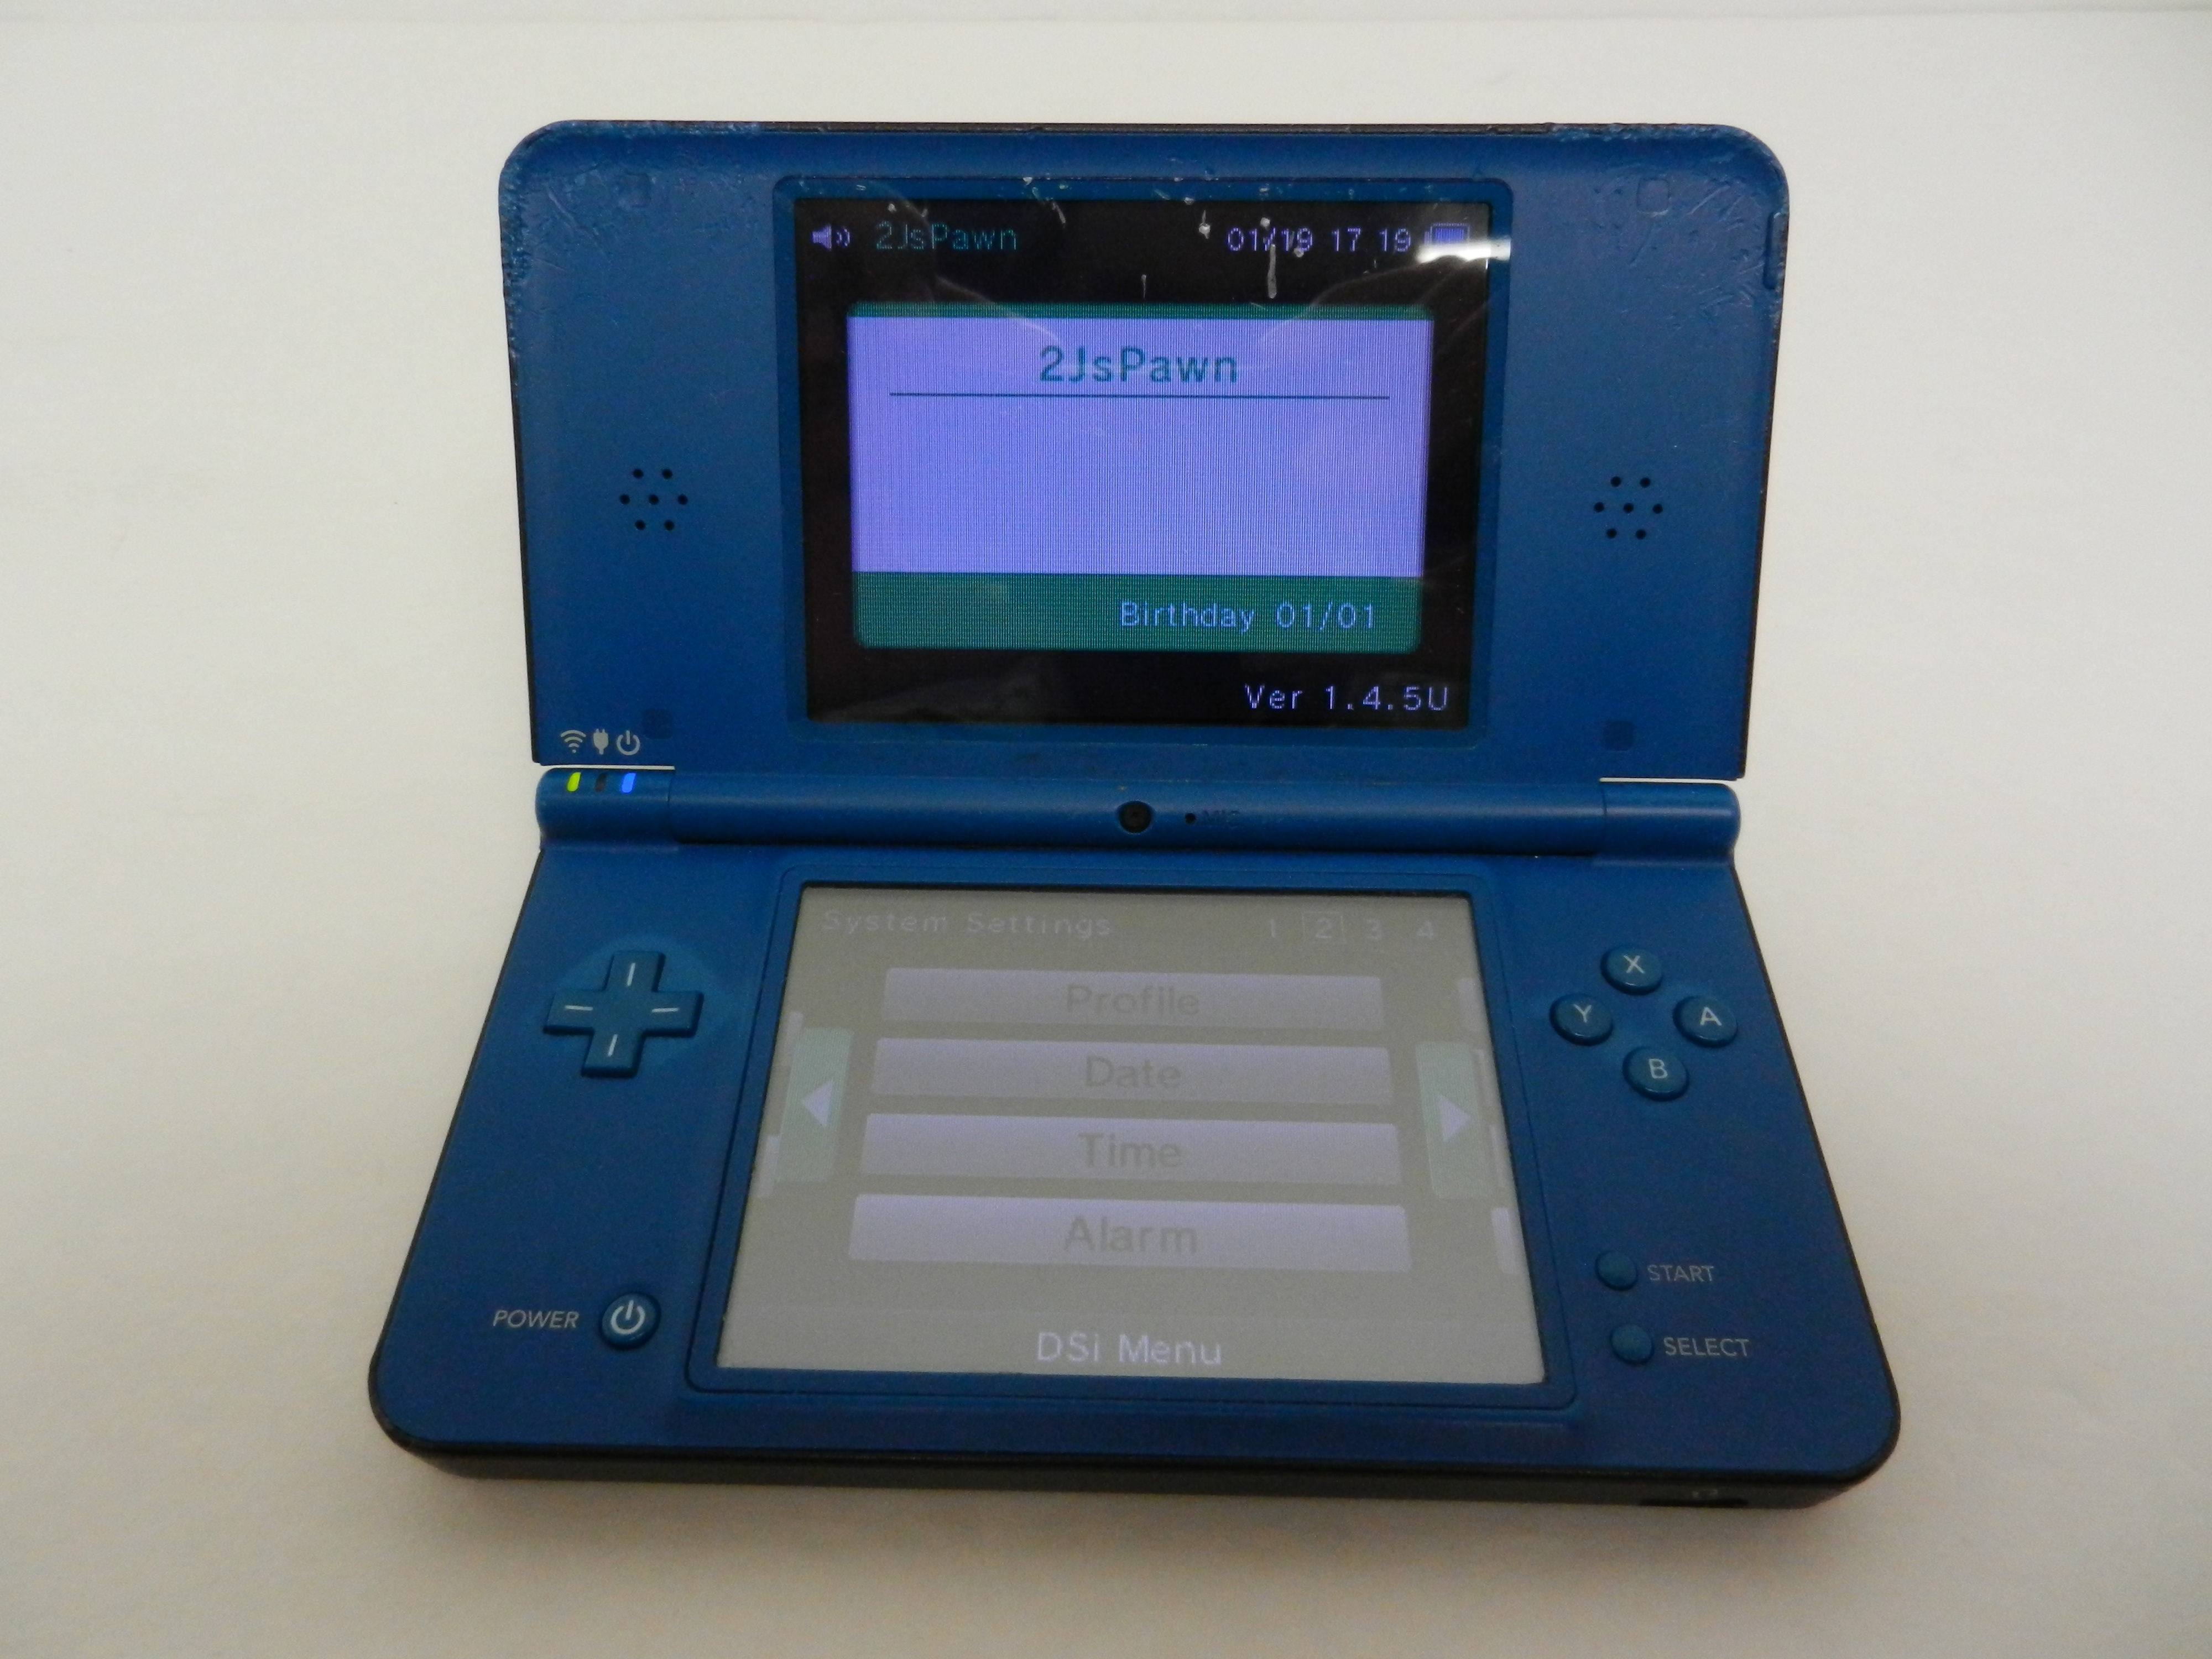 Nintendo DSi XL, Midnight Blue, Handheld System *** PARTS / REPAIR > D-PAD Issue